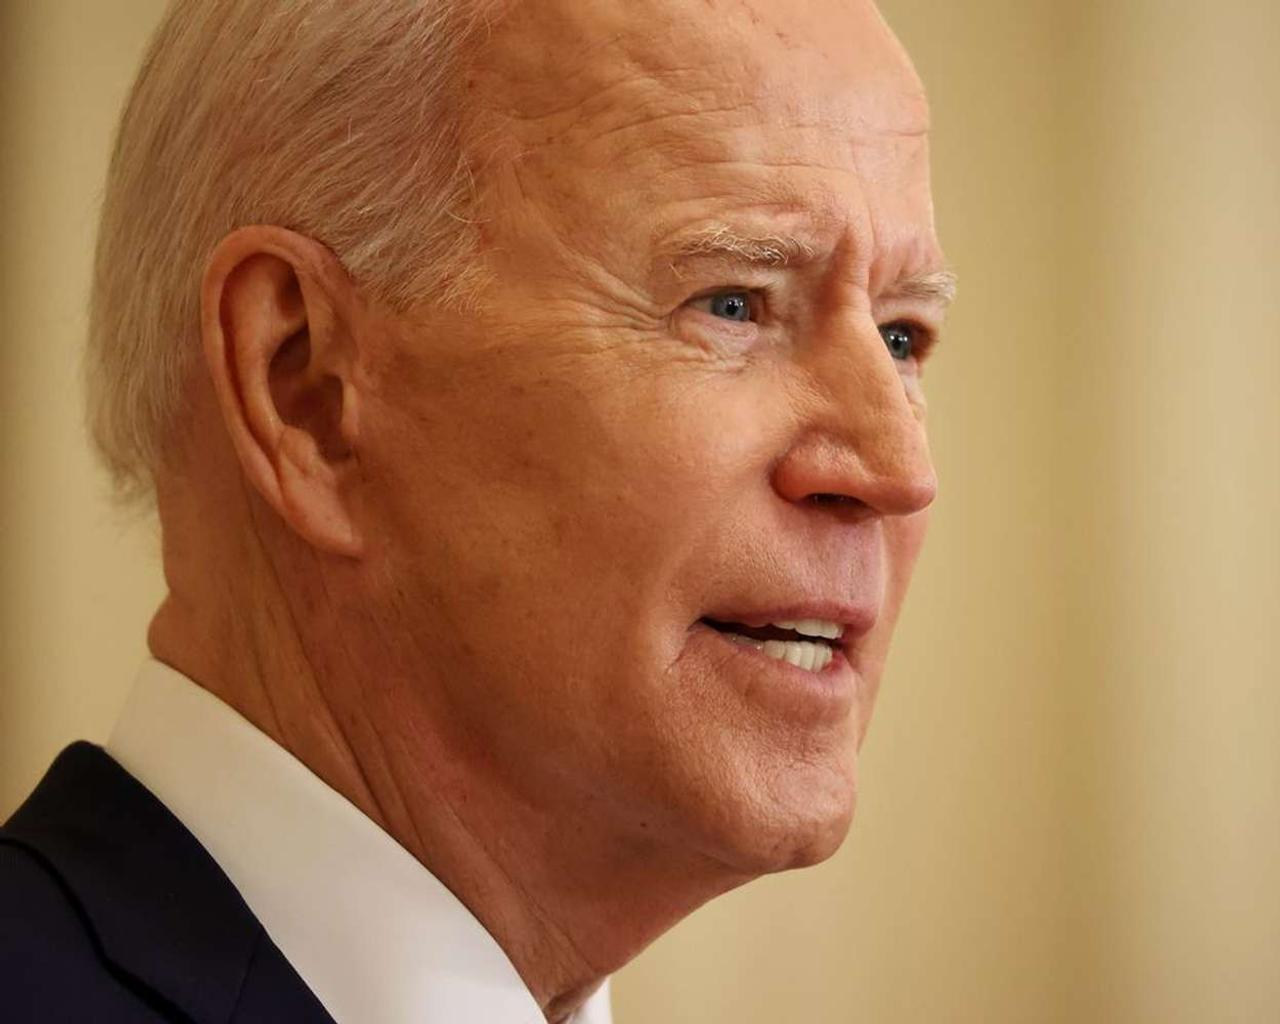 Biden Criticizes Attempts to Limit Voting Rights 'As Sick,' 'Non-American'